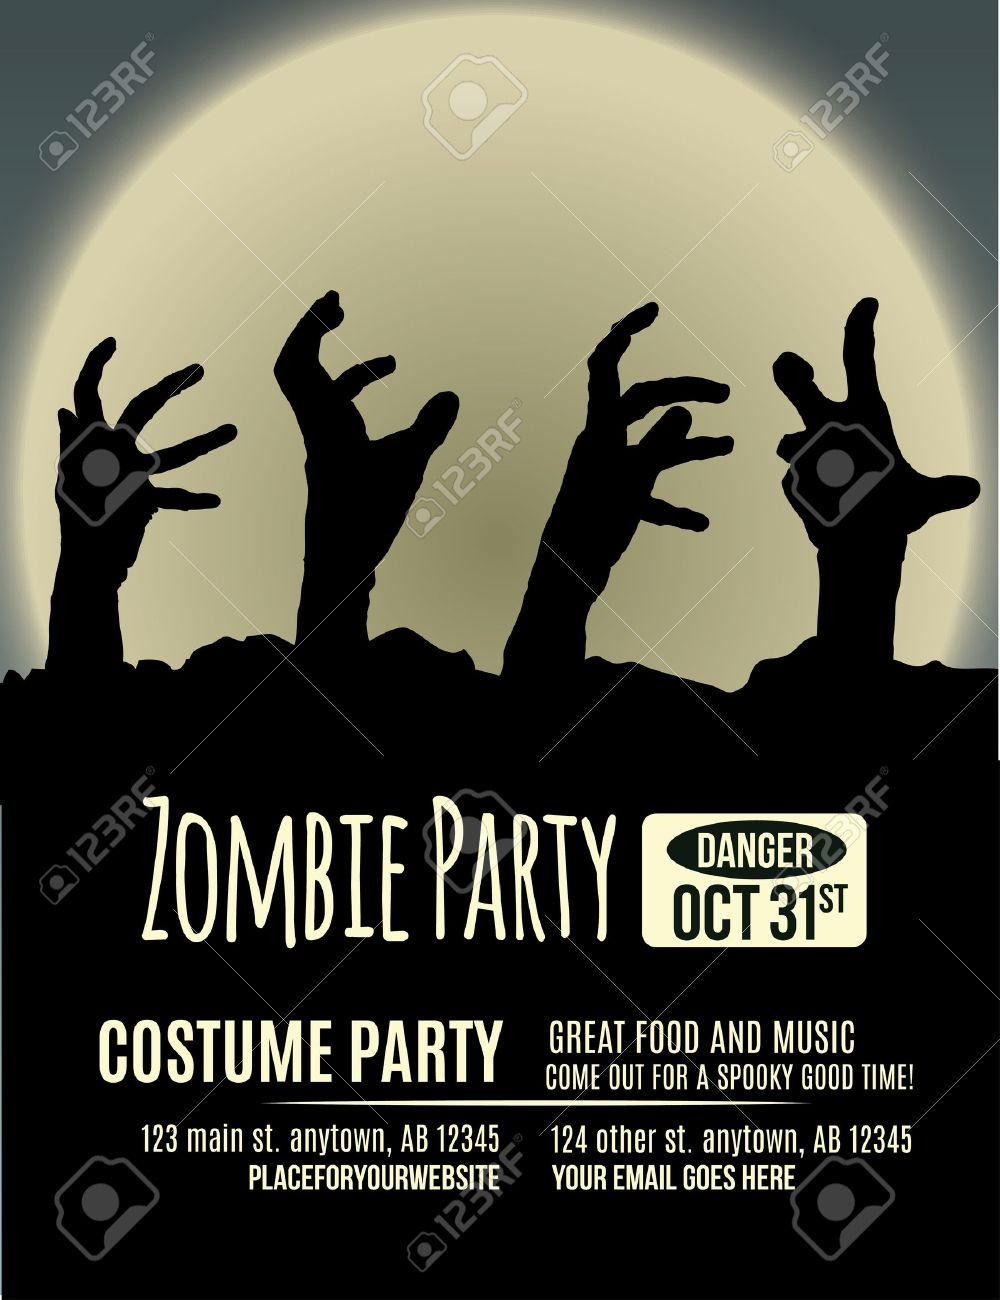 Halloween Party Invitation With Zombie Hands Coming Up Out Of ...